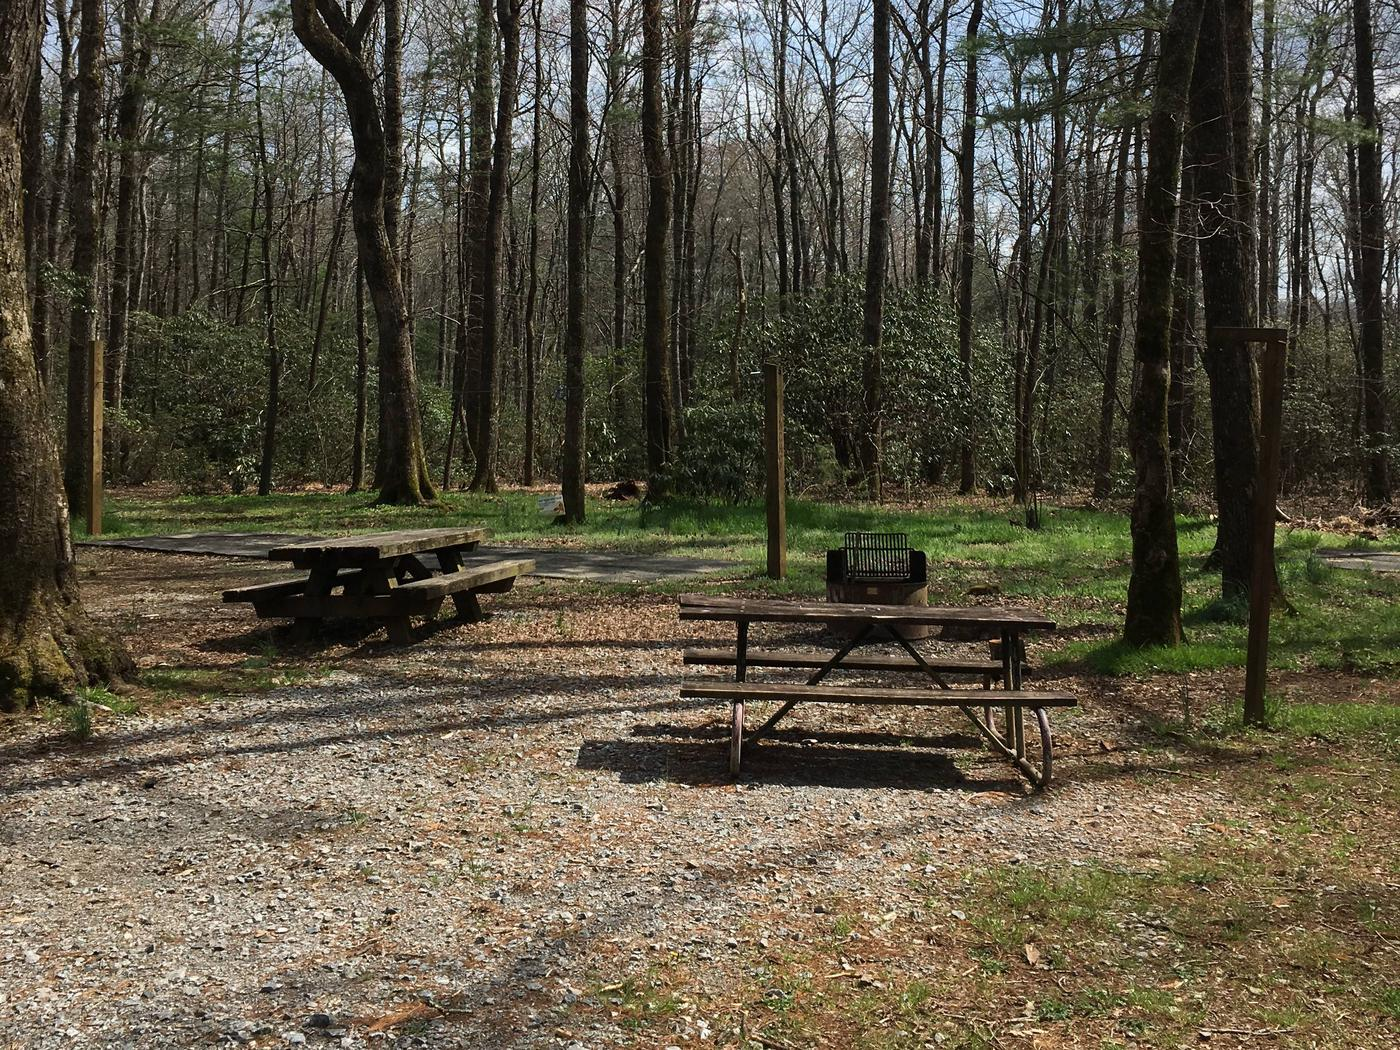 Site A3 - Single SiteSite A3 - Single Site featuring high line, picnic table, lantern pole, and grill.